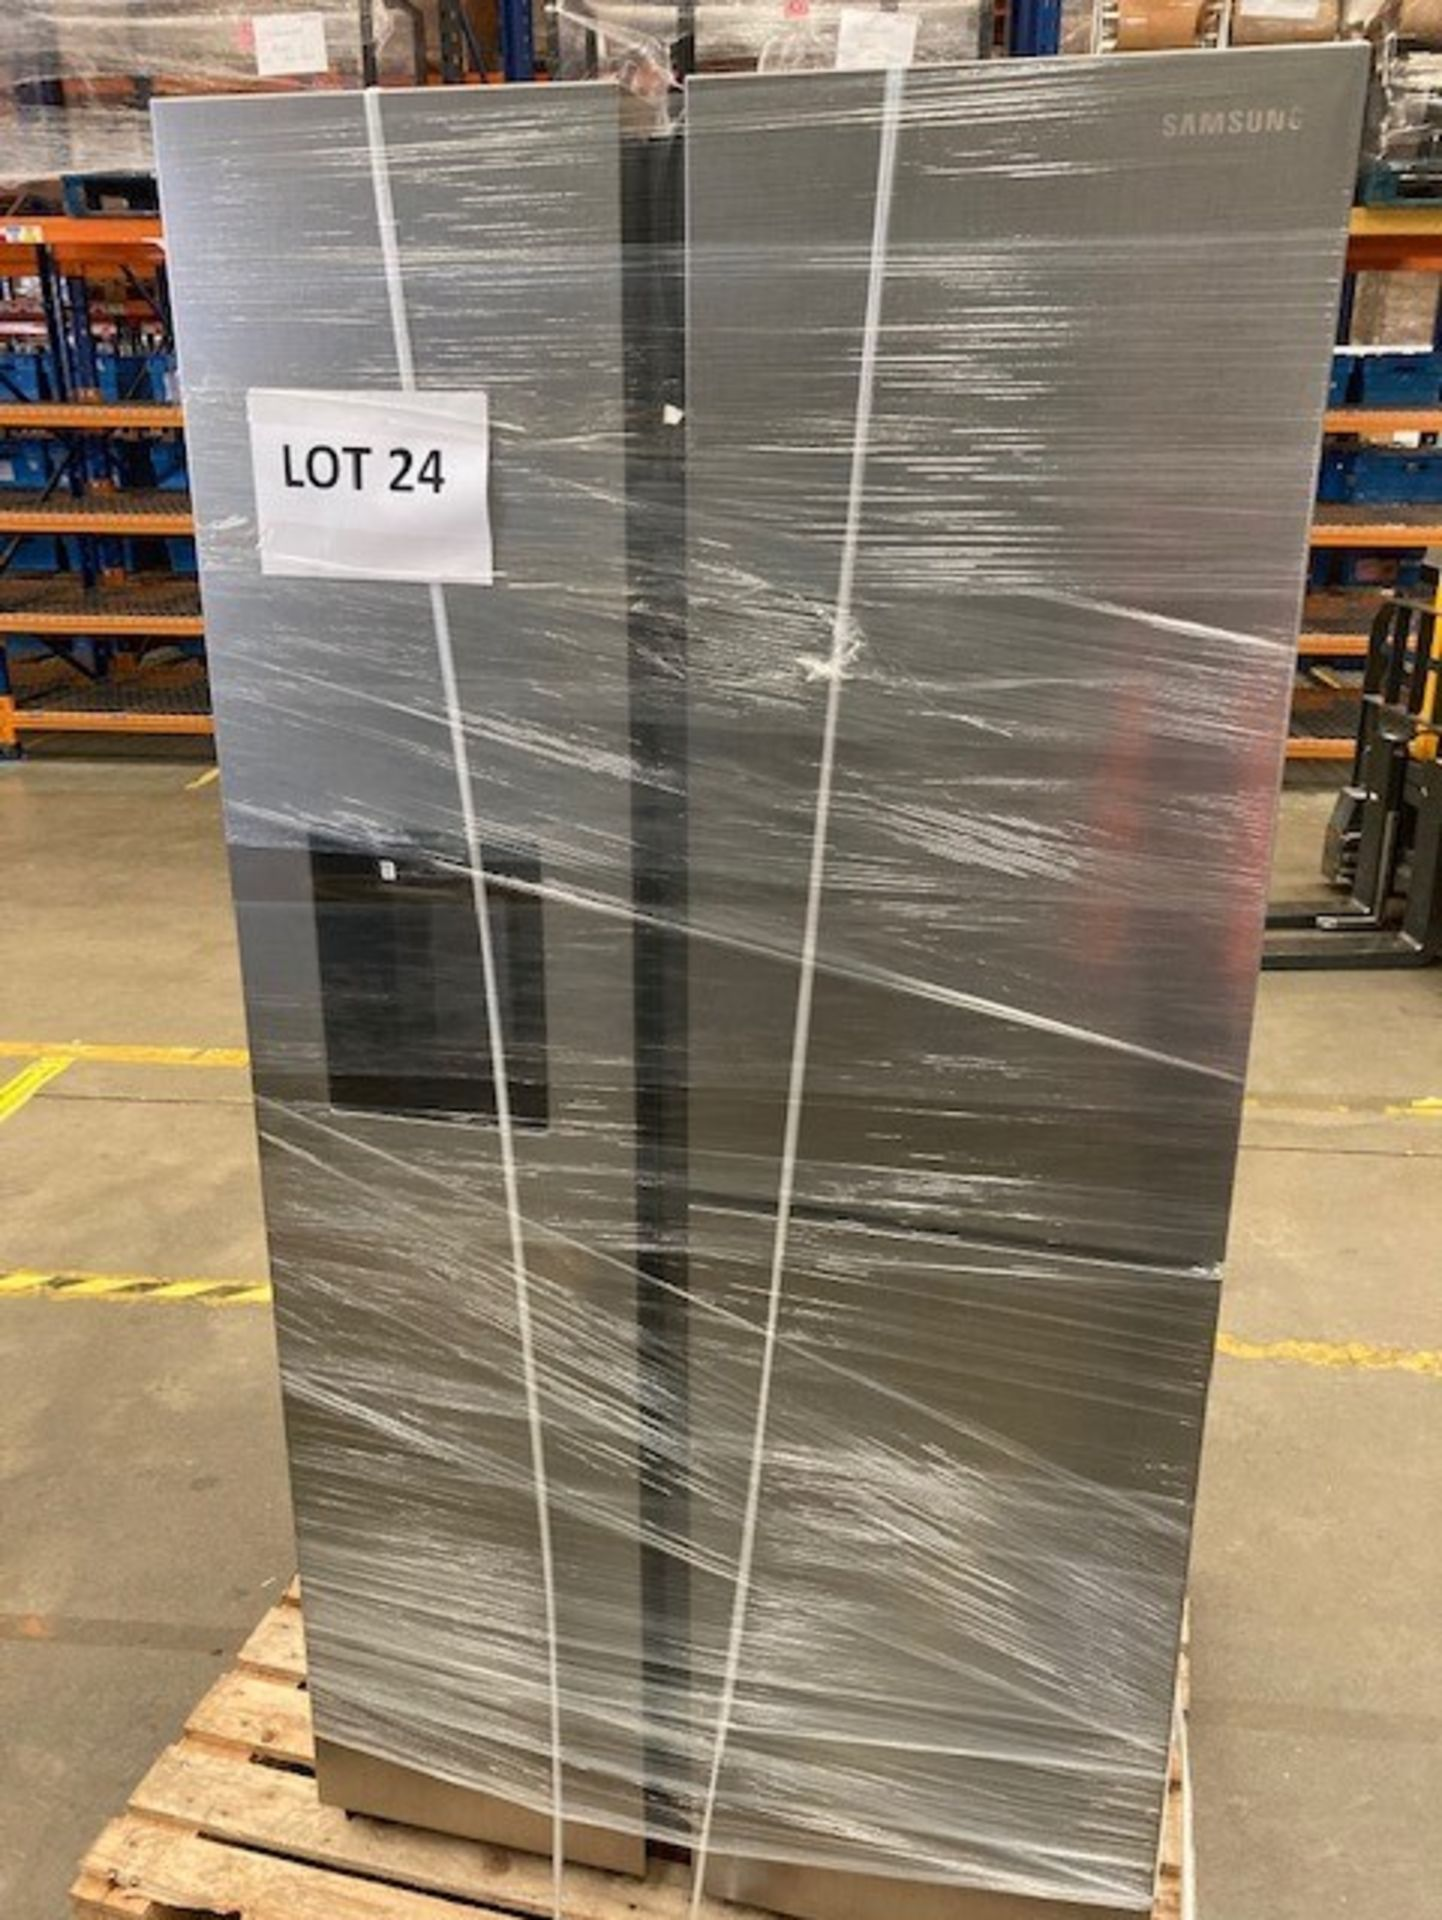 Pallet of 1 Samsung Water & Ice Fridge freezer. Latest selling price £1,769.99* - Image 5 of 10